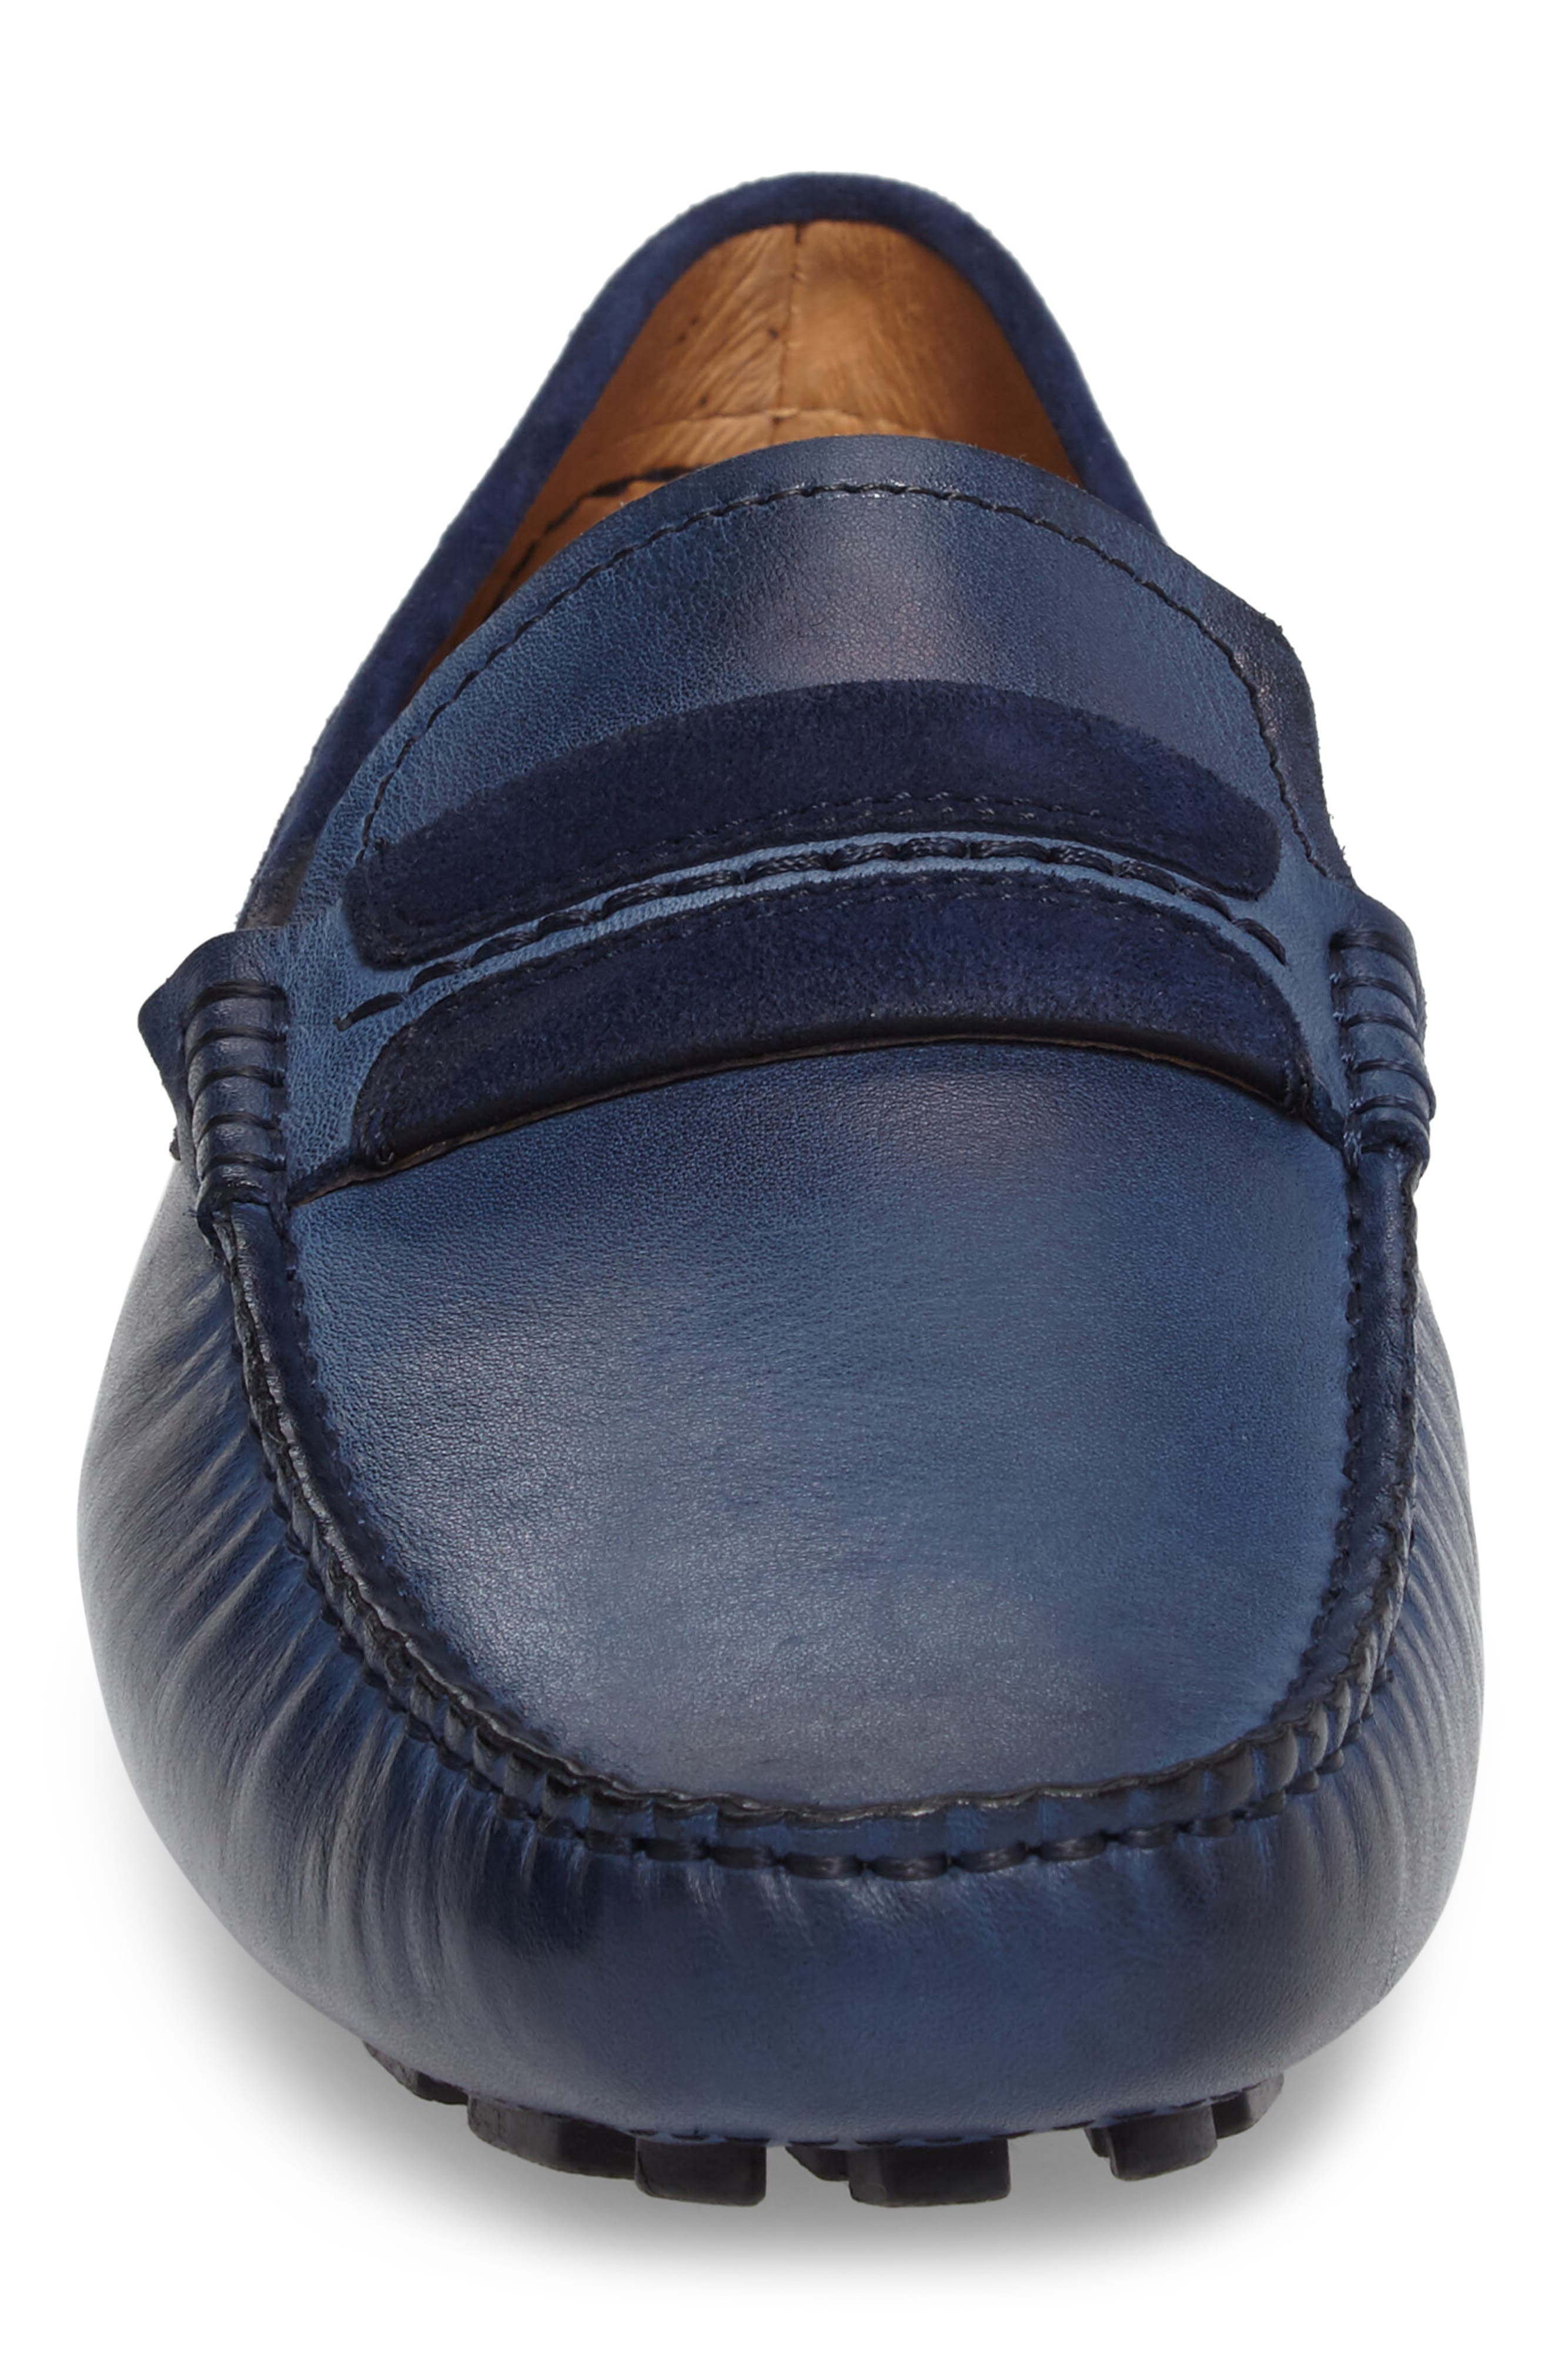 ZANZARA,                             Francesca Driving Shoe,                             Alternate thumbnail 4, color,                             BLUE LEATHER